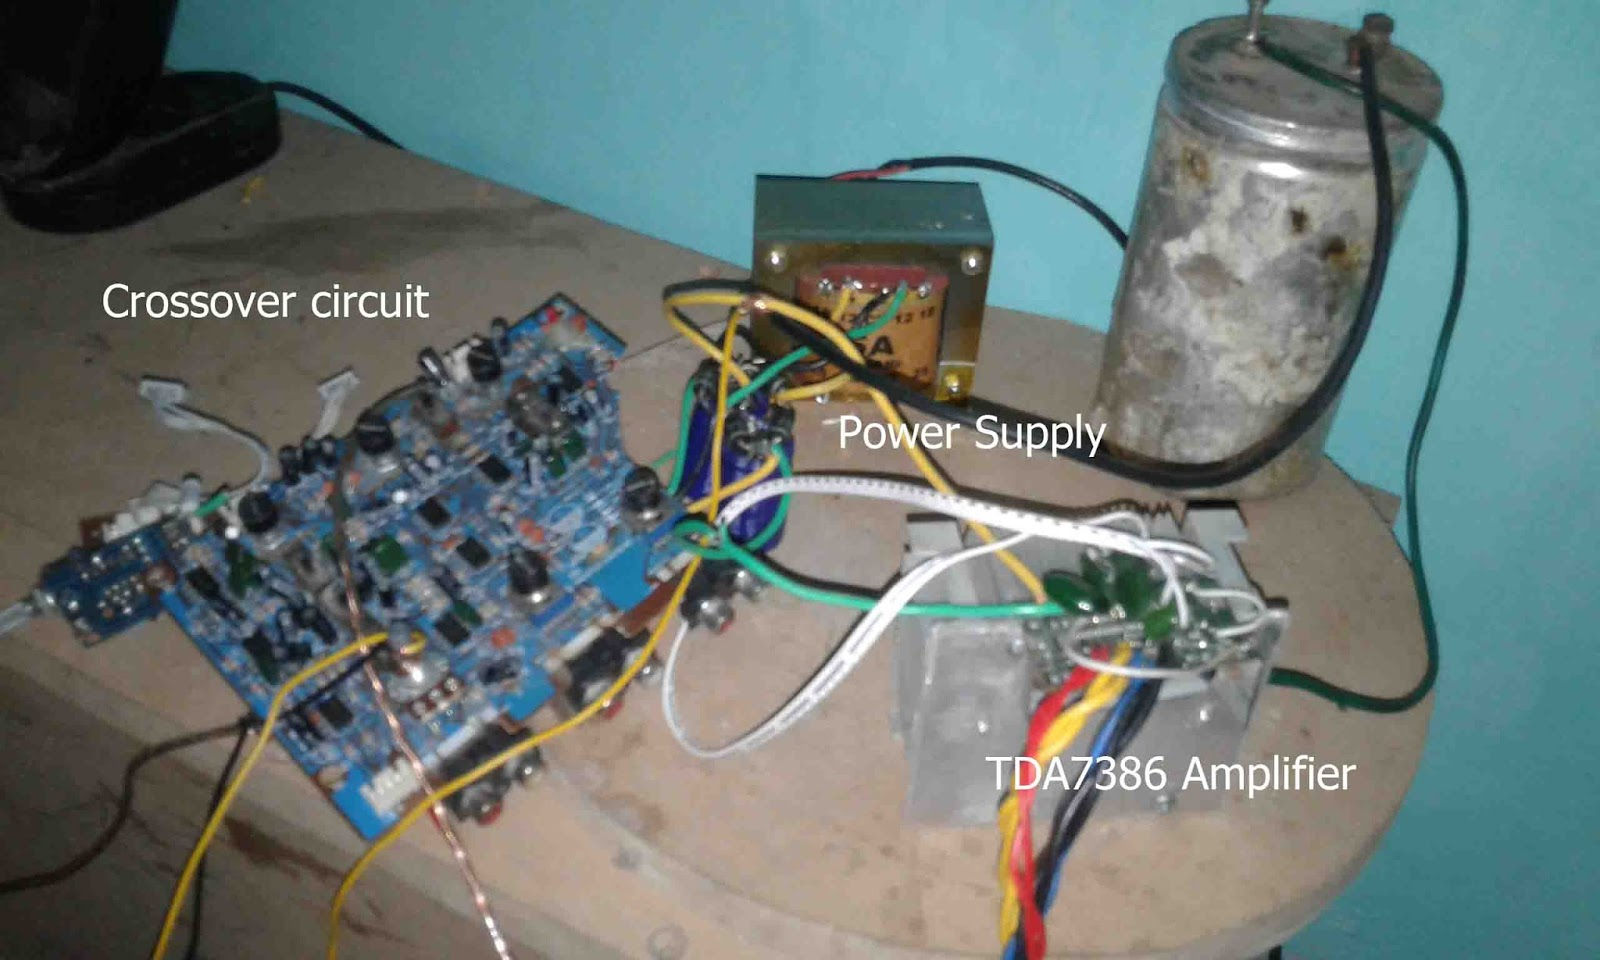 Making Surround Amplifier TDA7386 4 Channel - Electronic ...